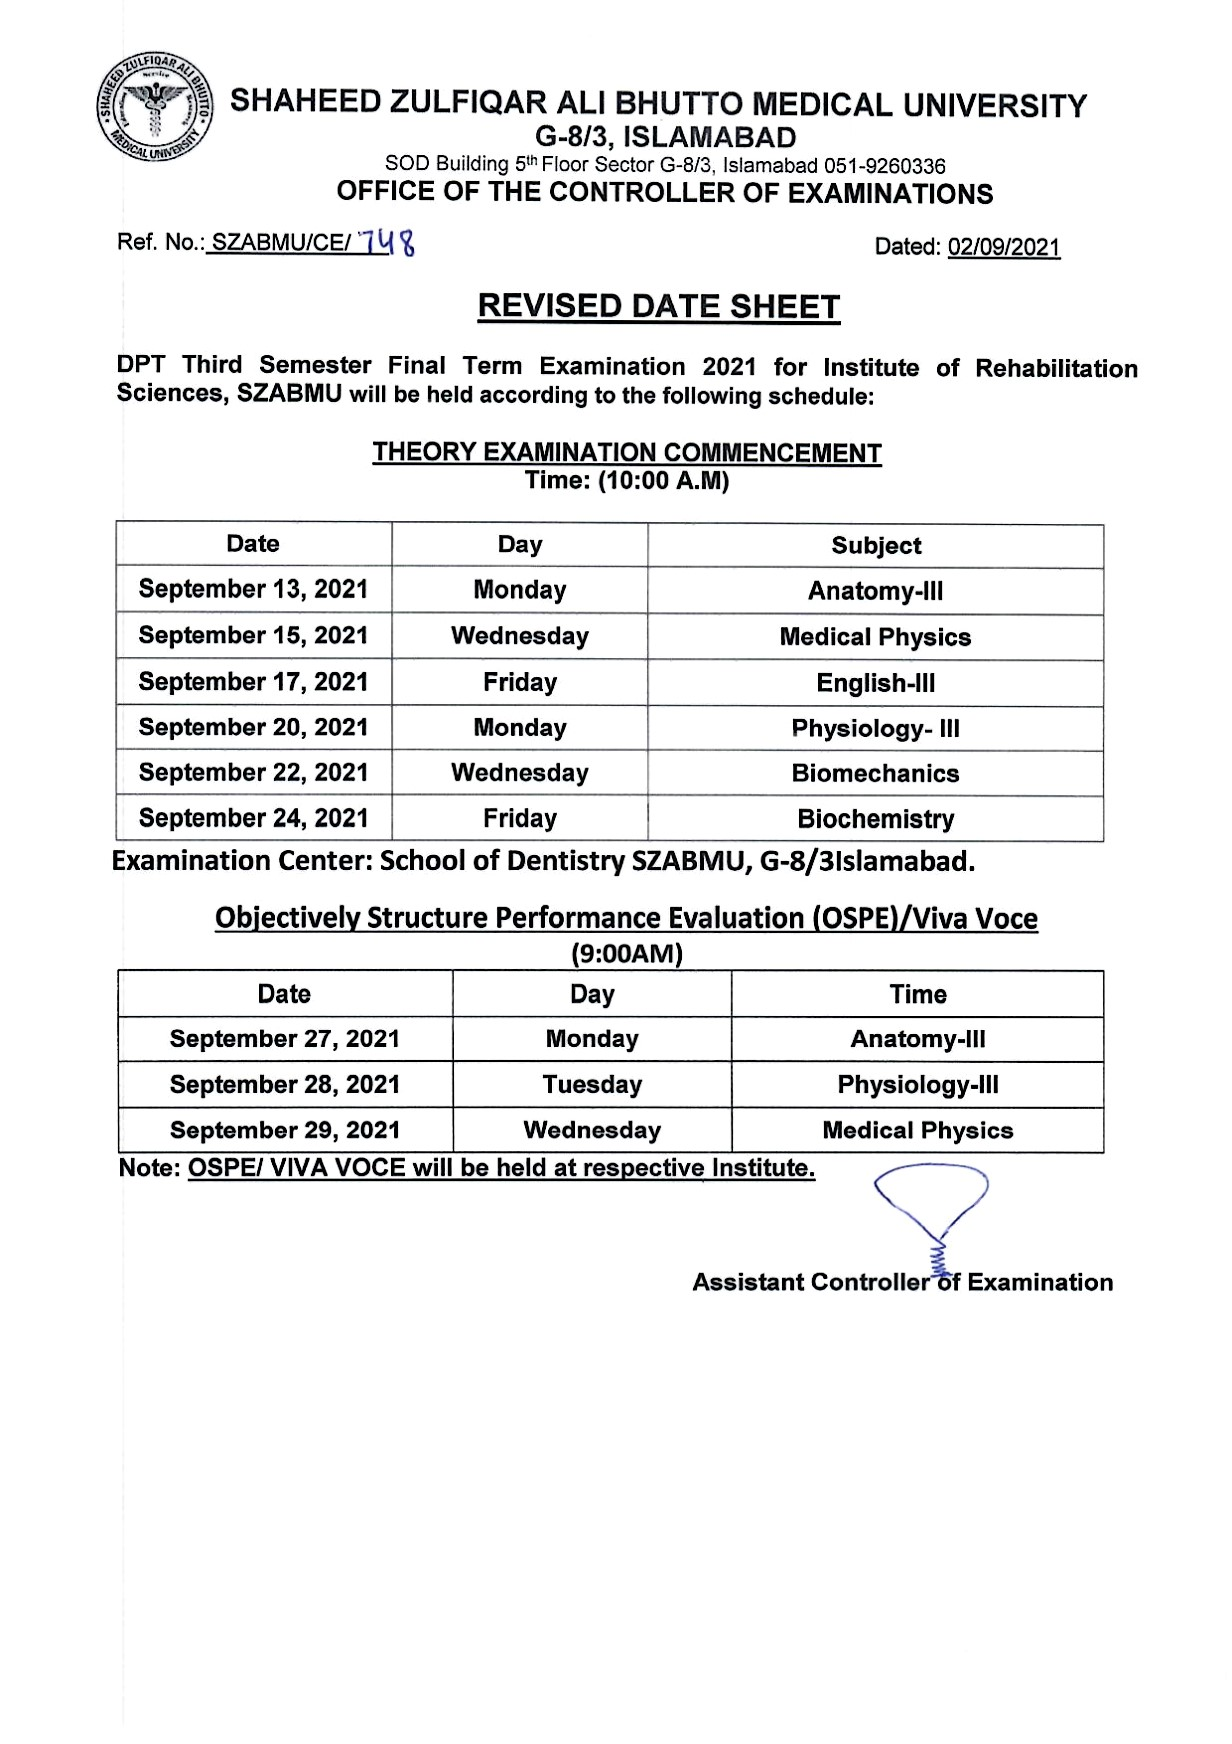 Revised Date Sheet - DPT 1st and 3rd Semester Final Examinations 2021